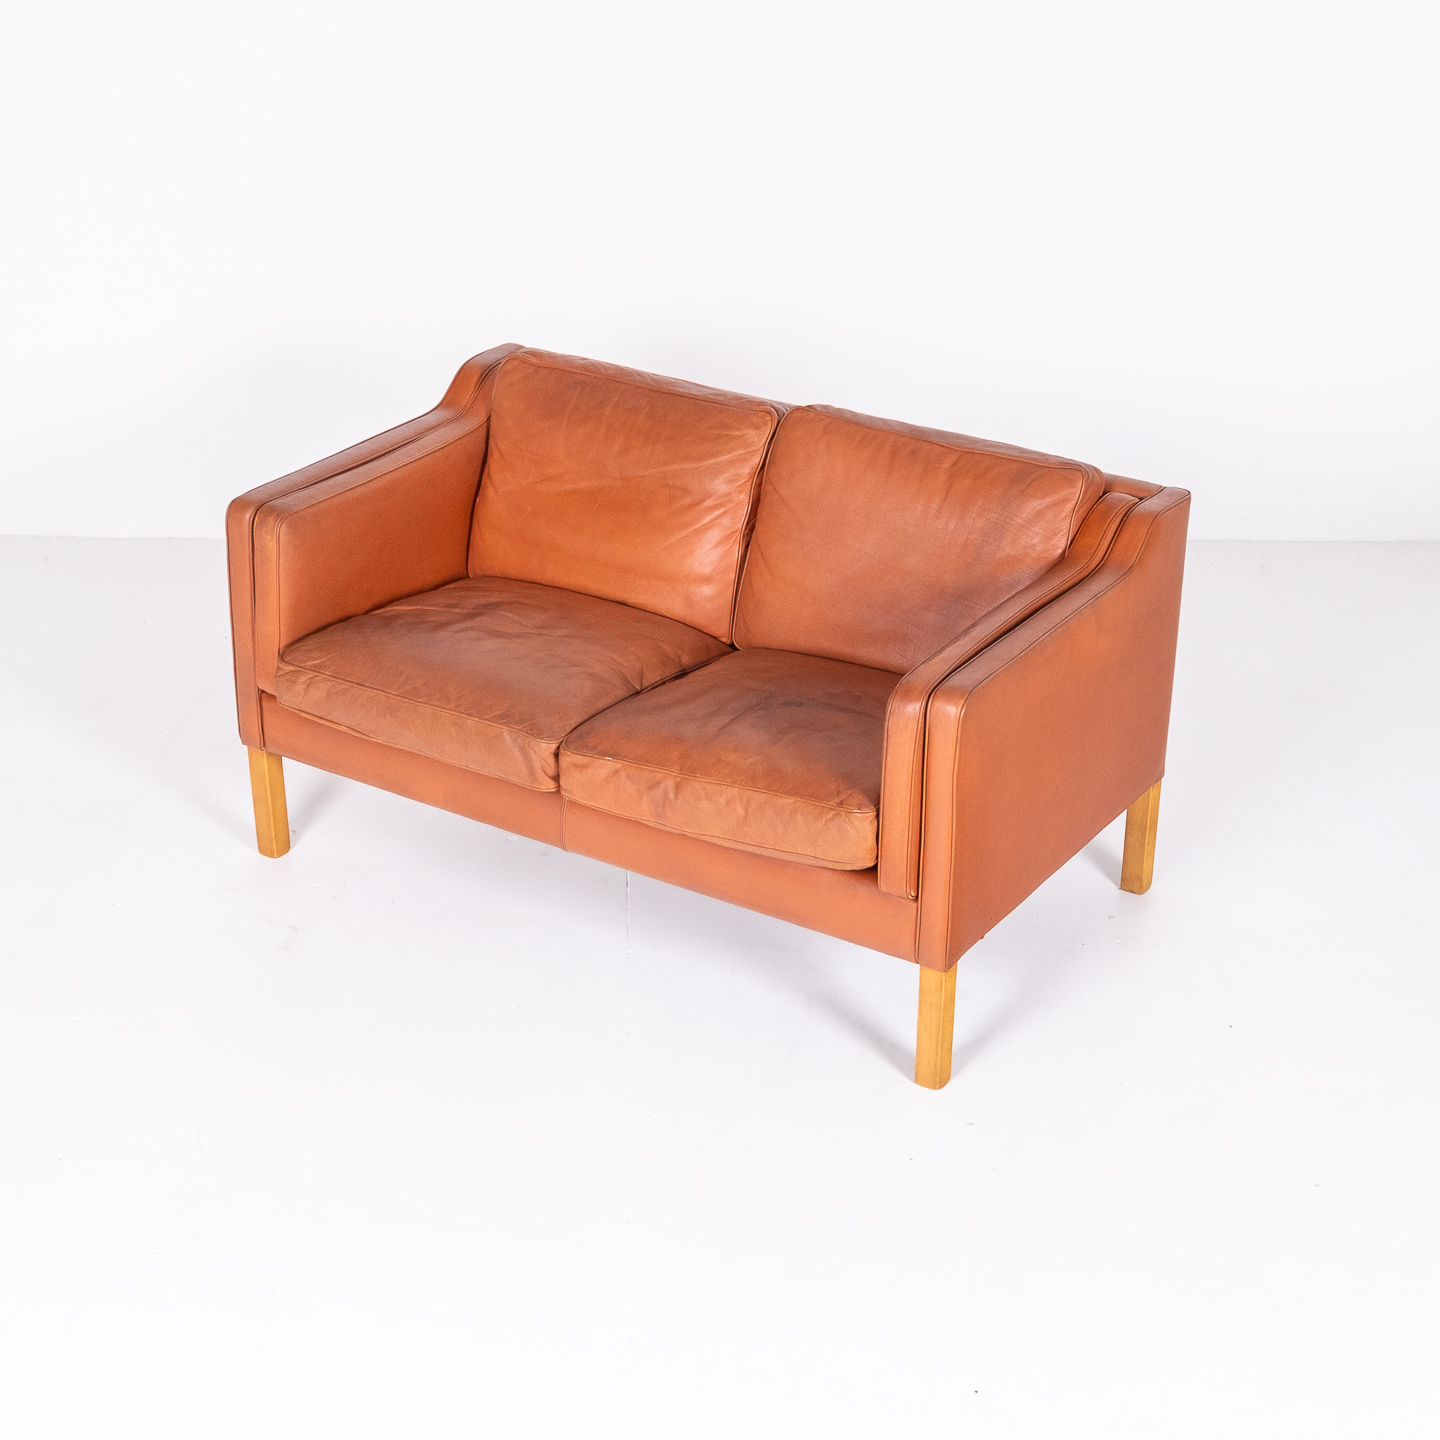 2 Seat Sofa In Tan Leather By Georg Thams, 1960s, Denmark1